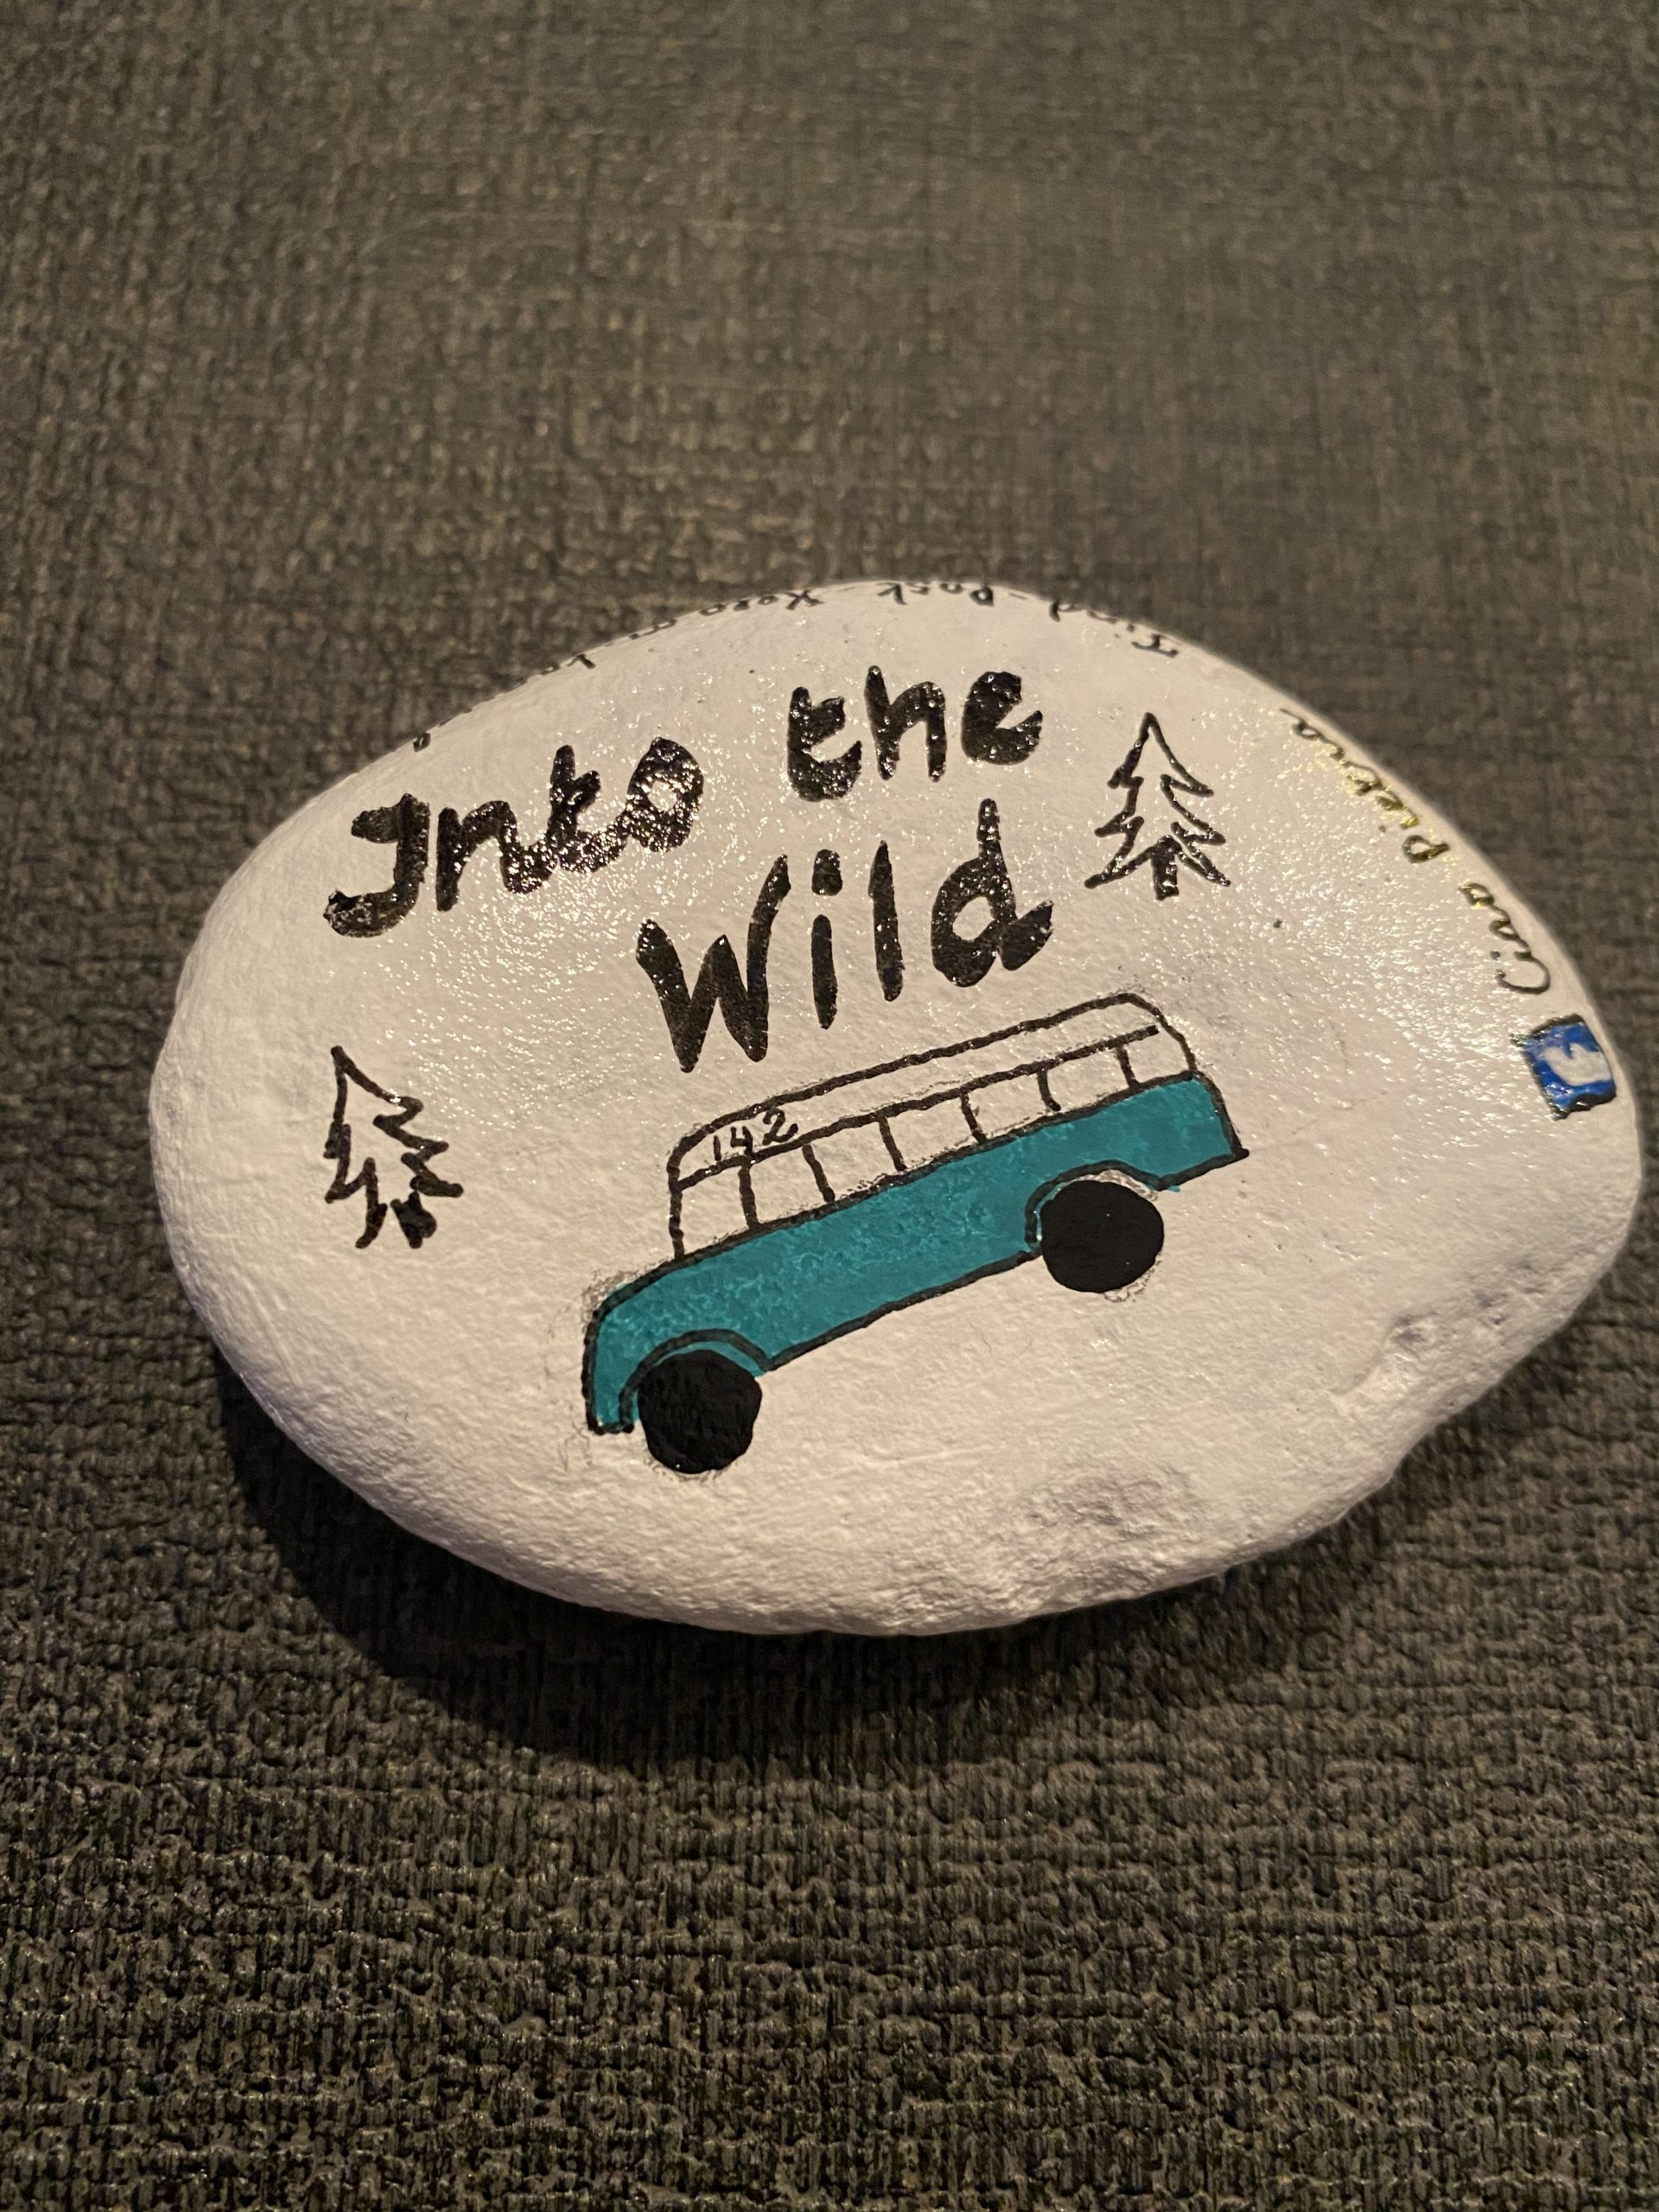 Linda Ritchi's Painted Rock